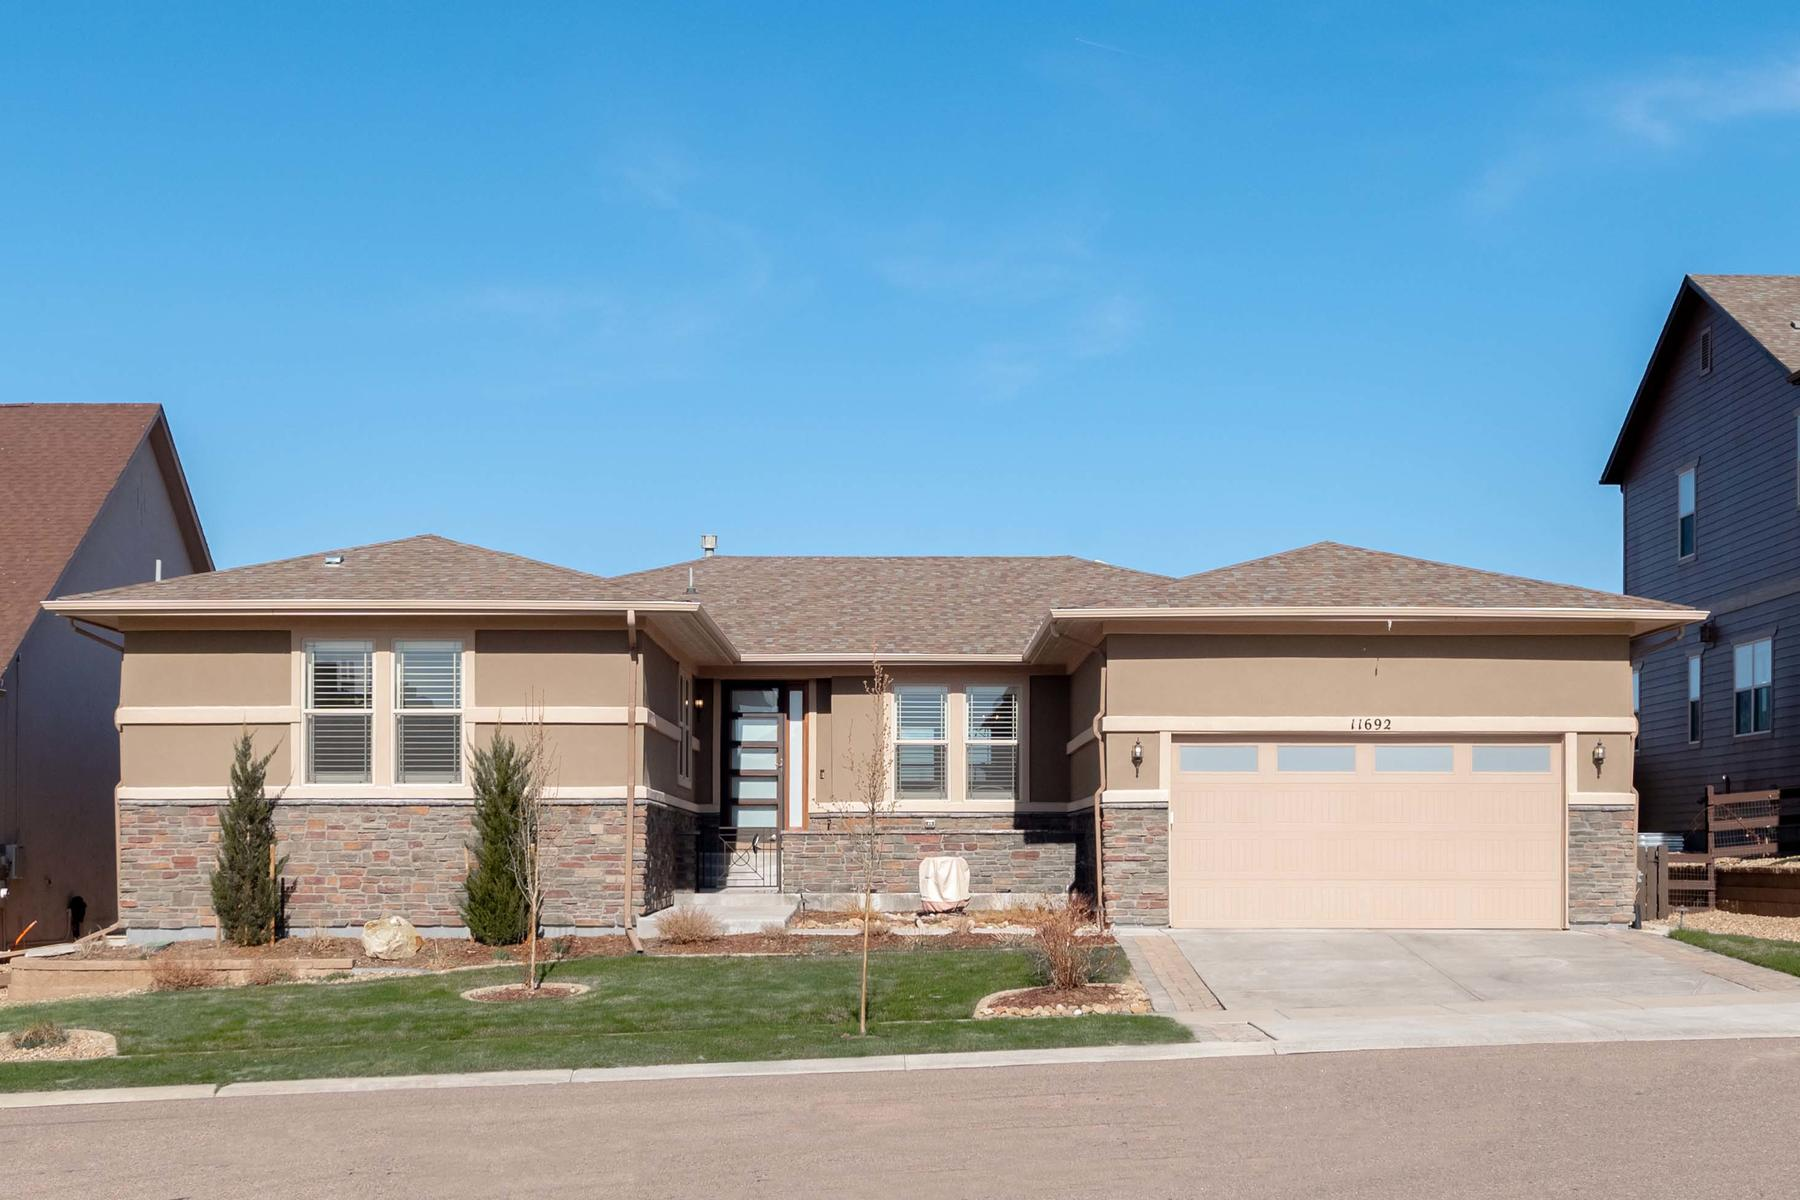 Single Family Homes for Sale at An absolute showstopper in Heirloom! Full of natural light with a show home feel 11692 Spotted Street Parker, Colorado 80134 United States